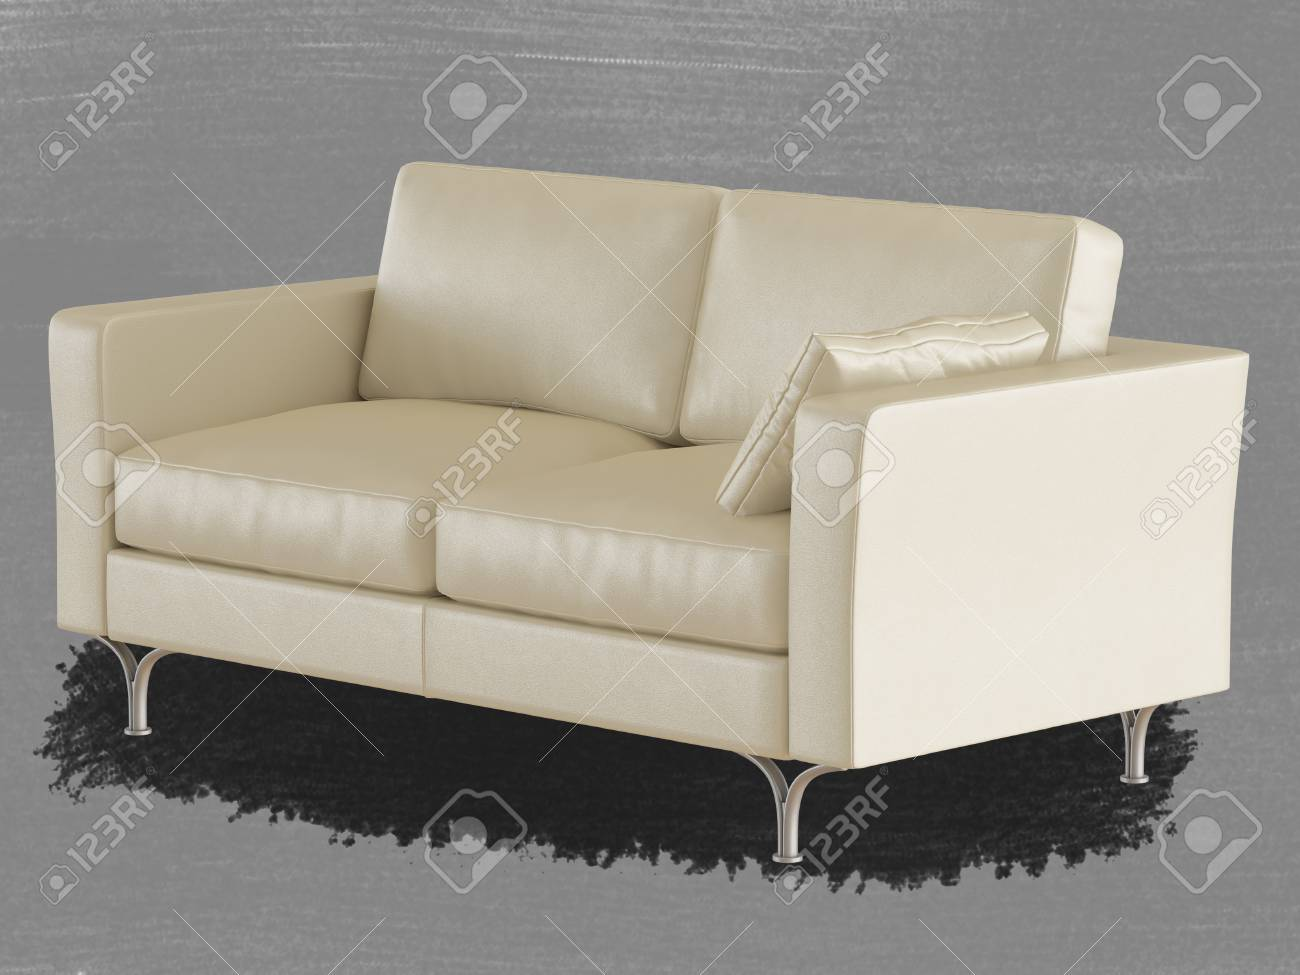 Phenomenal Beige Leather Sofa With A Pillow With Iron Legs On A Gray Background Squirreltailoven Fun Painted Chair Ideas Images Squirreltailovenorg